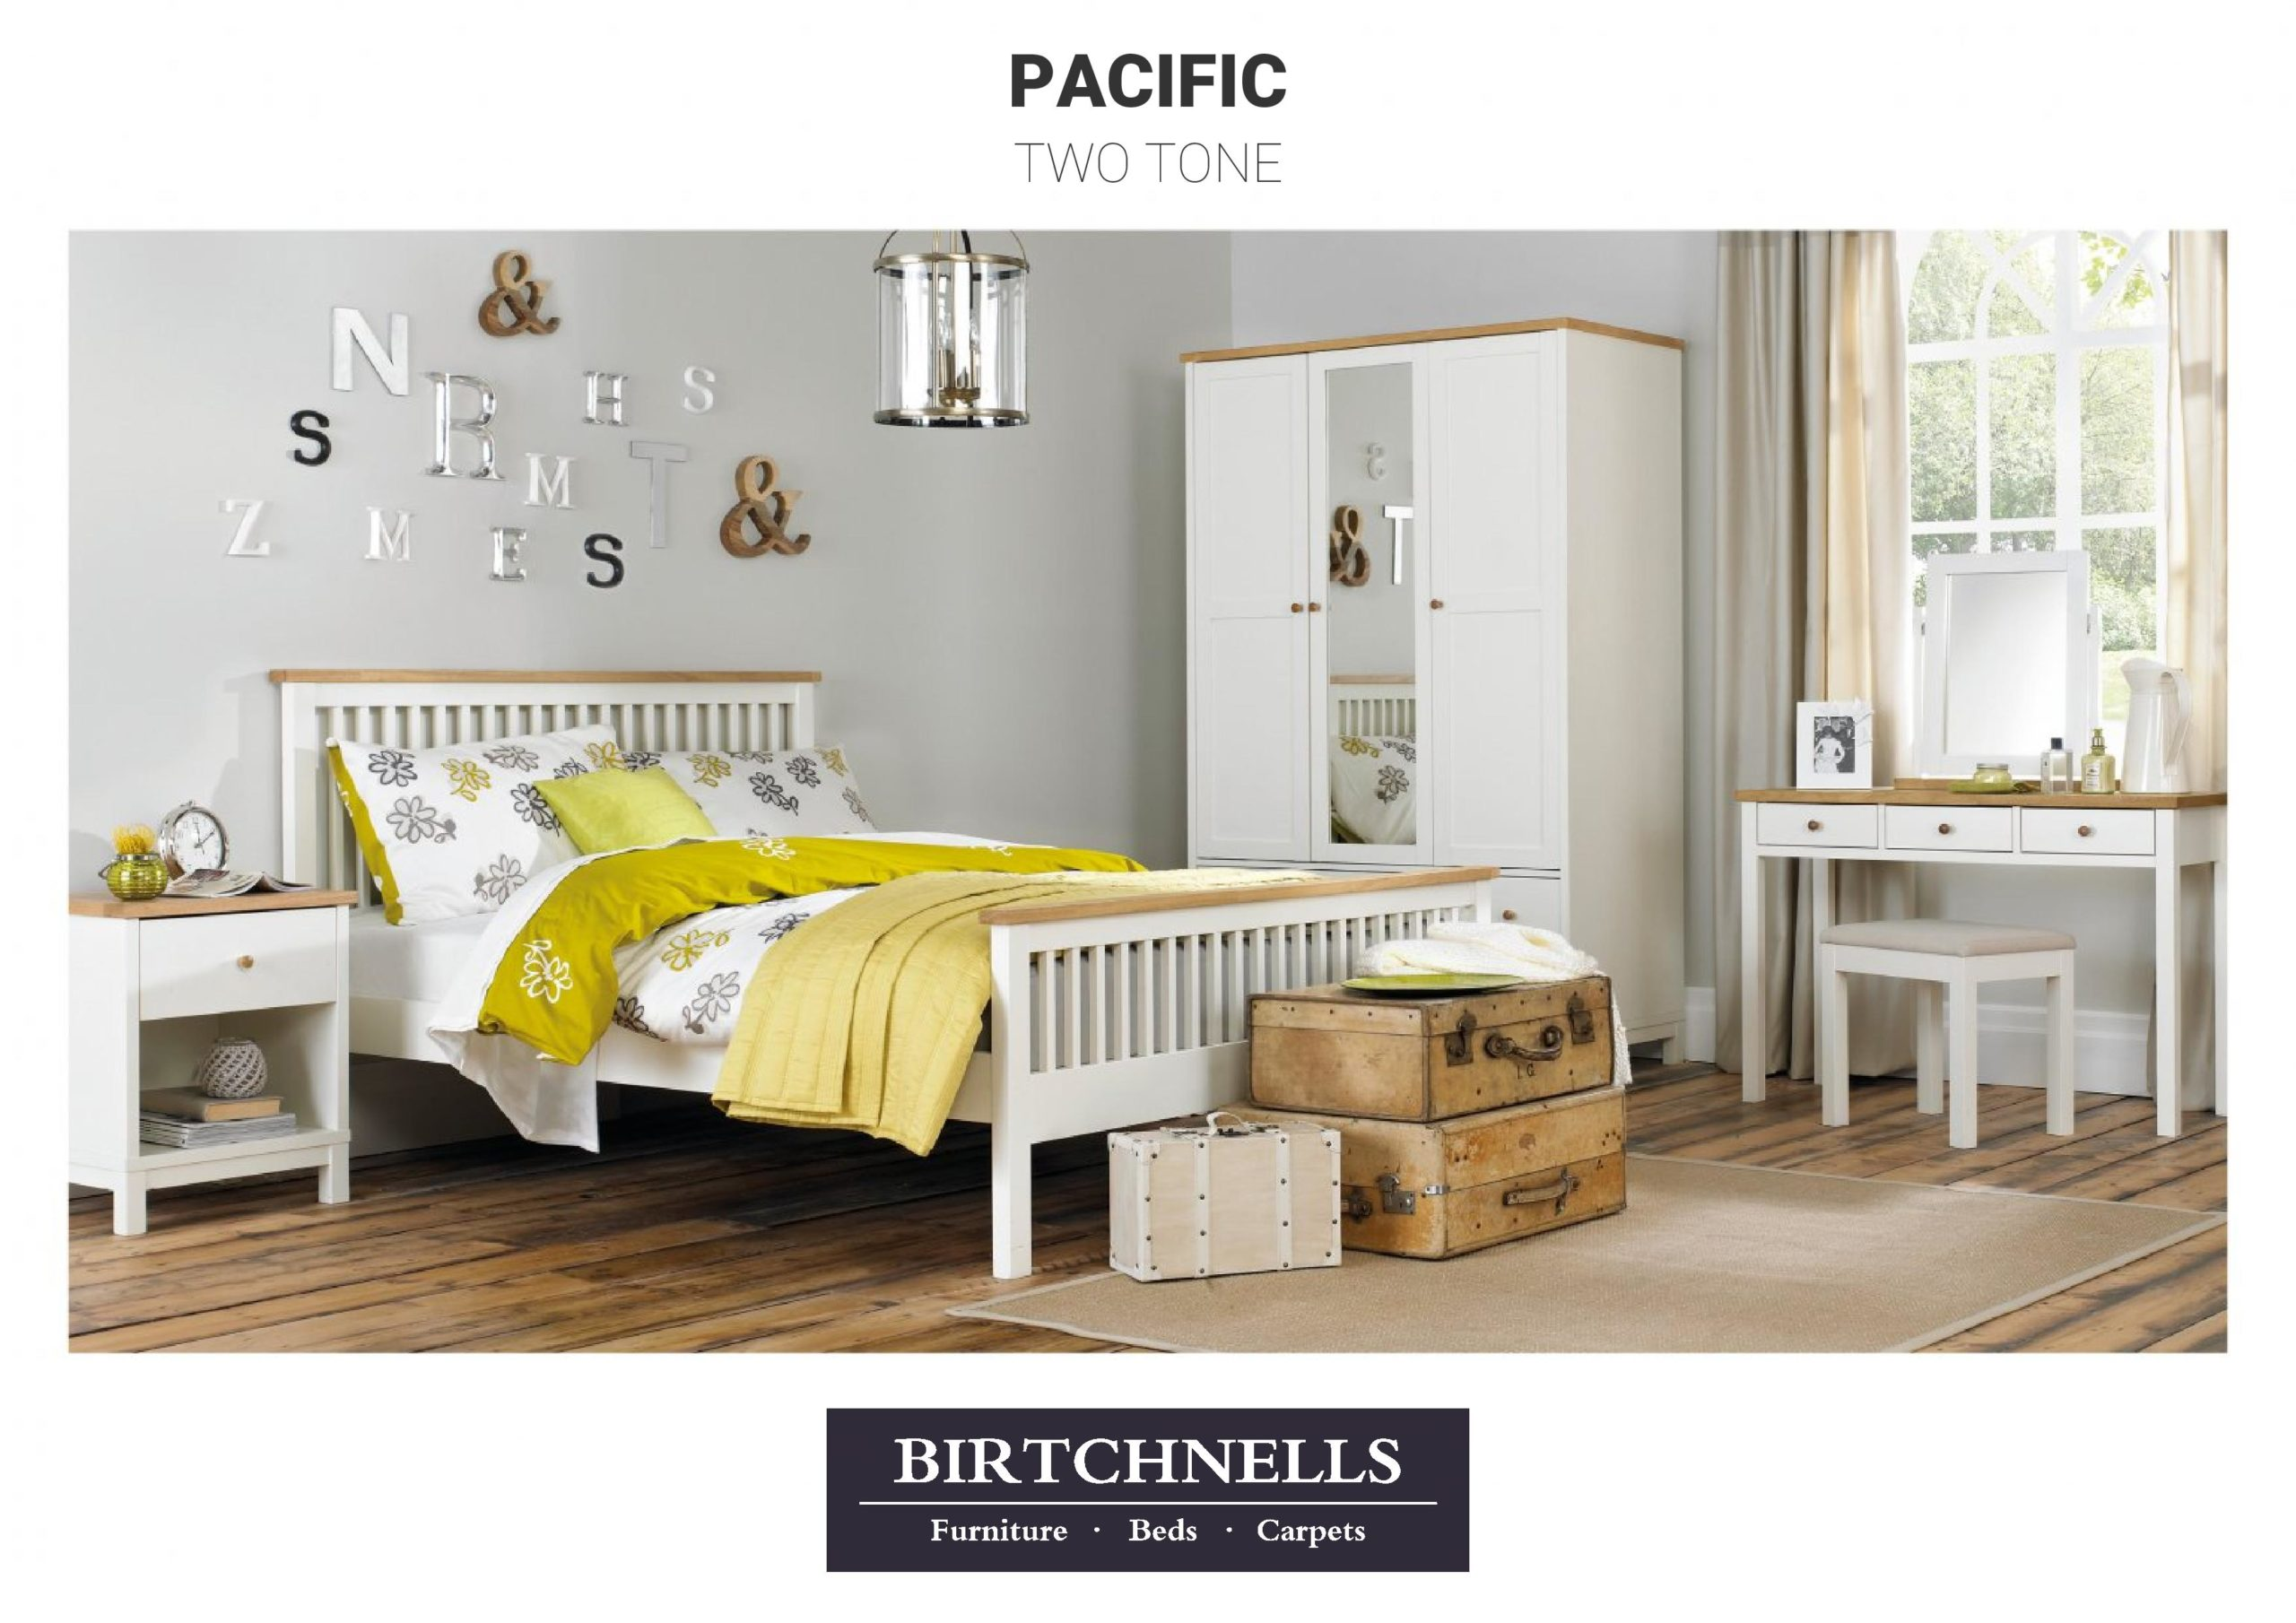 Pacific Two Tone Bedroom